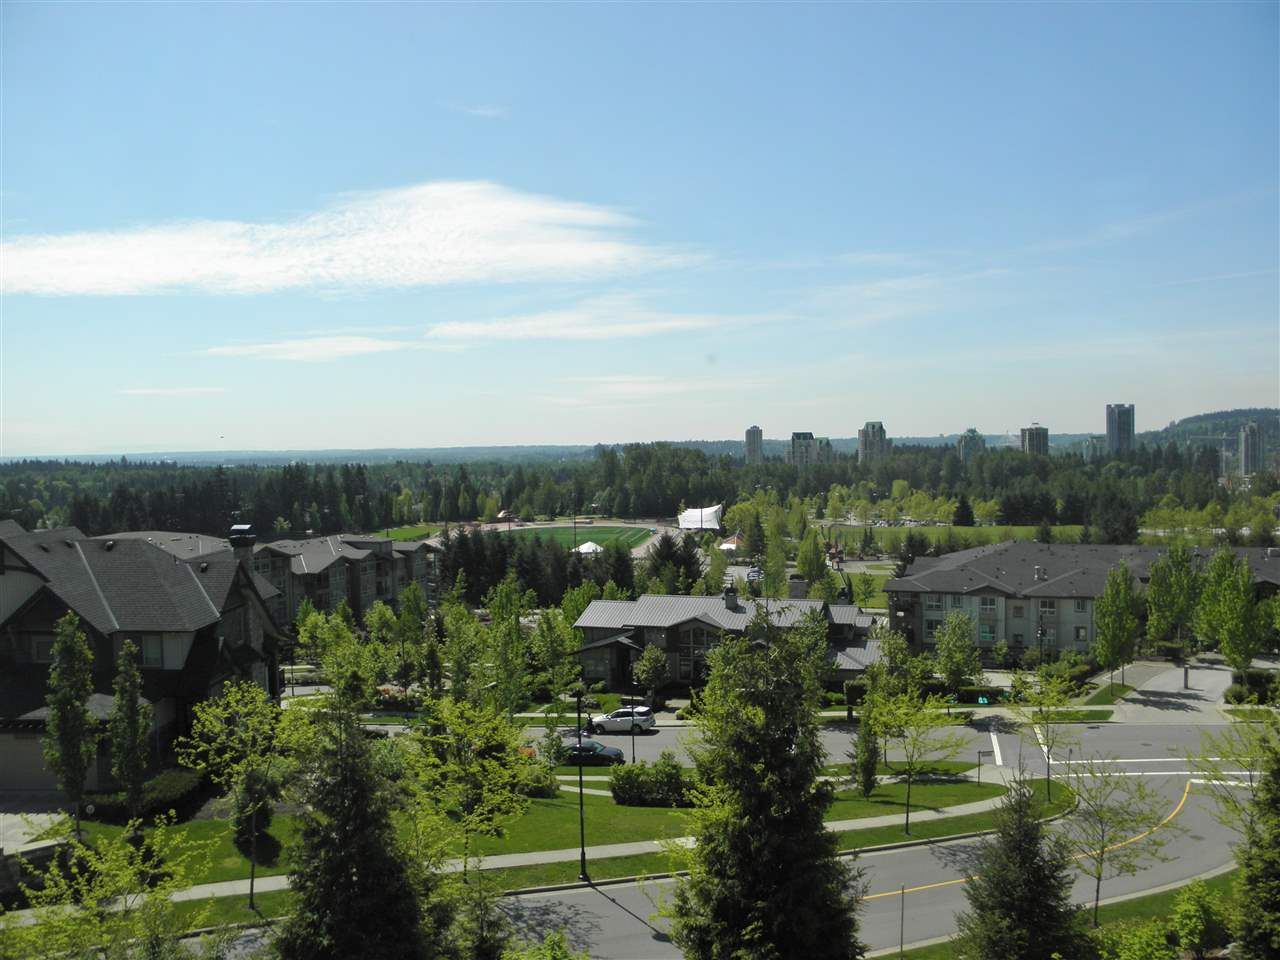 Main Photo: 18 1362 PURCELL DRIVE in Coquitlam: Westwood Plateau Townhouse for sale : MLS®# R2009945